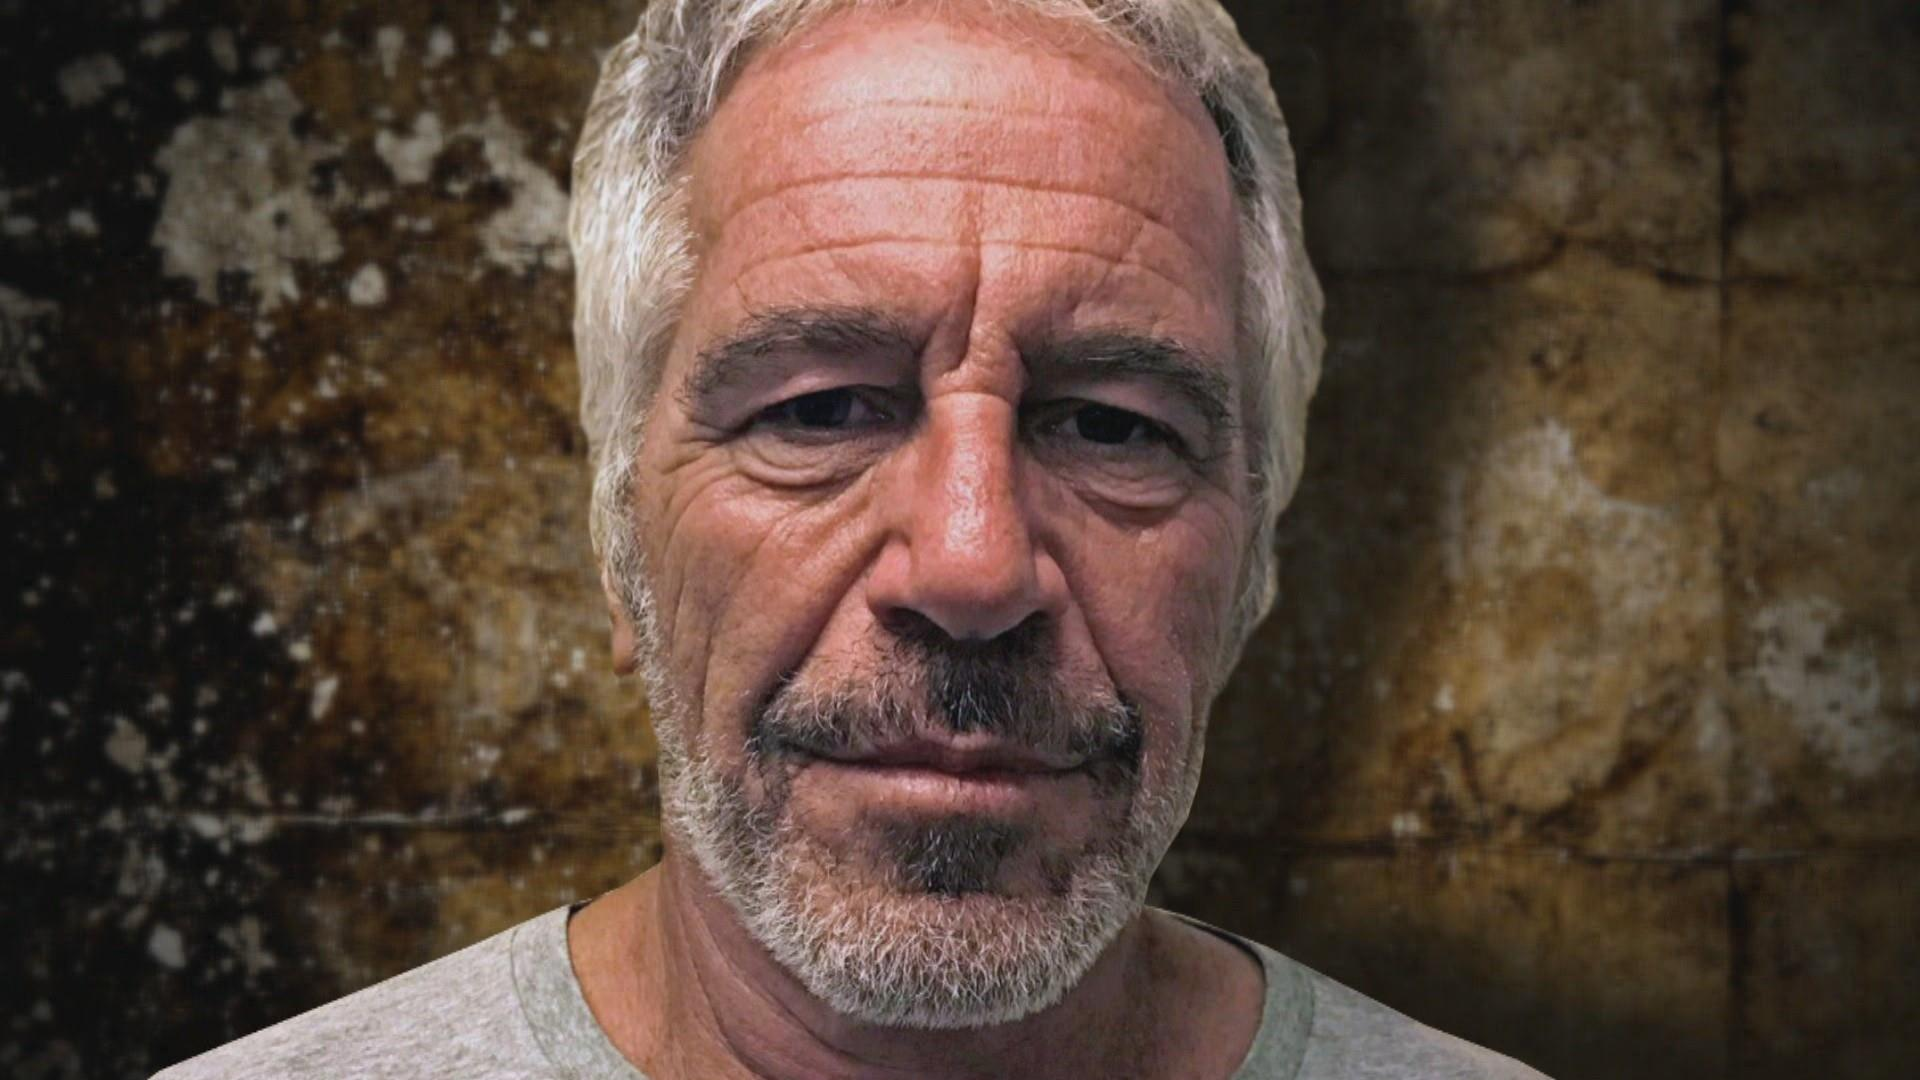 Jeffrey Epstein is dead by apparent suicide in federal jail, Justice Department investigating